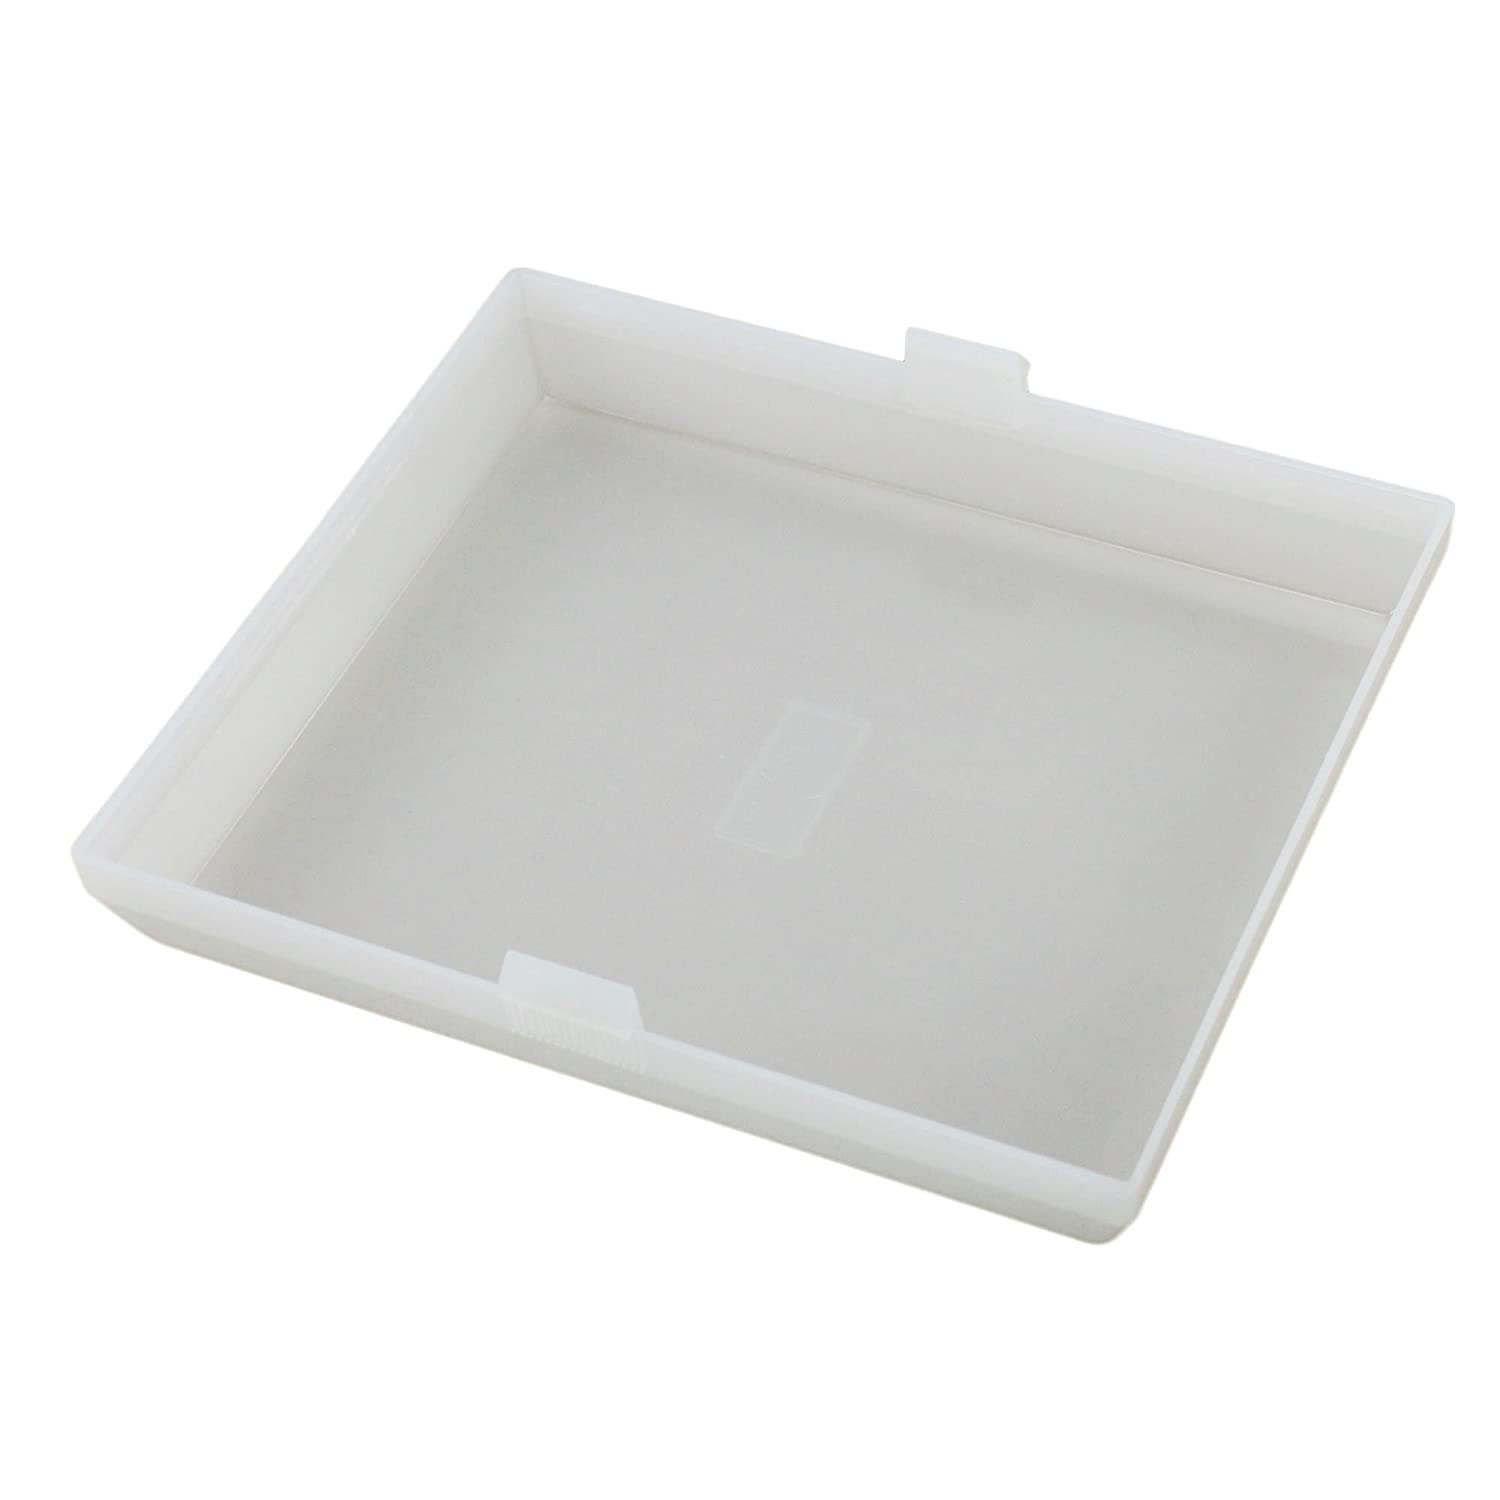 Part # AP5609551 Ventilation Fan and Light Lens Cover for Nutone, Broan, Kenmore (replaces part number S97011813)